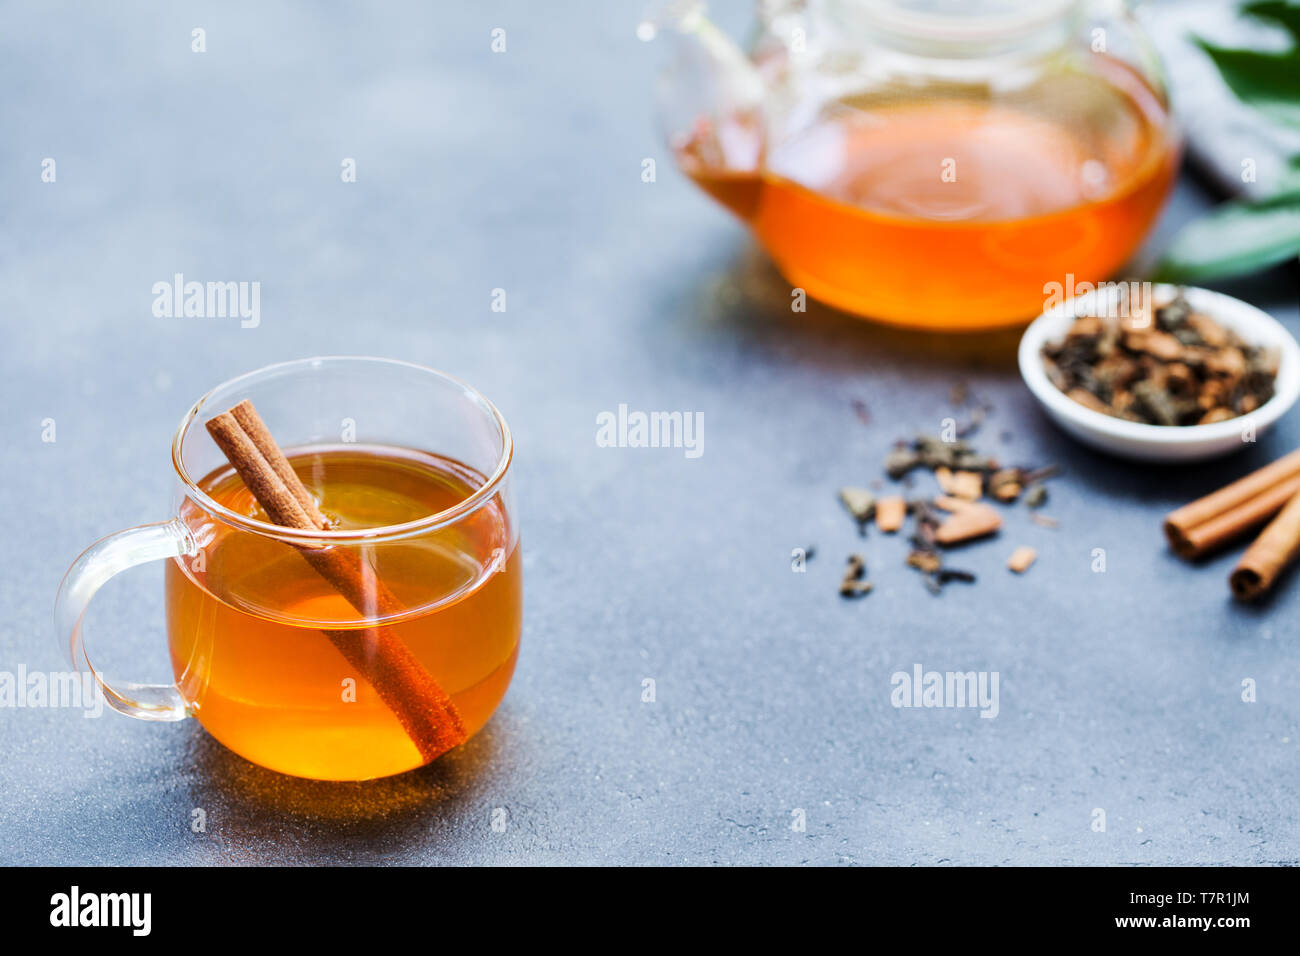 Tea with cinnamon in glass cup and teapot on grey stone background. Copy space. Stock Photo